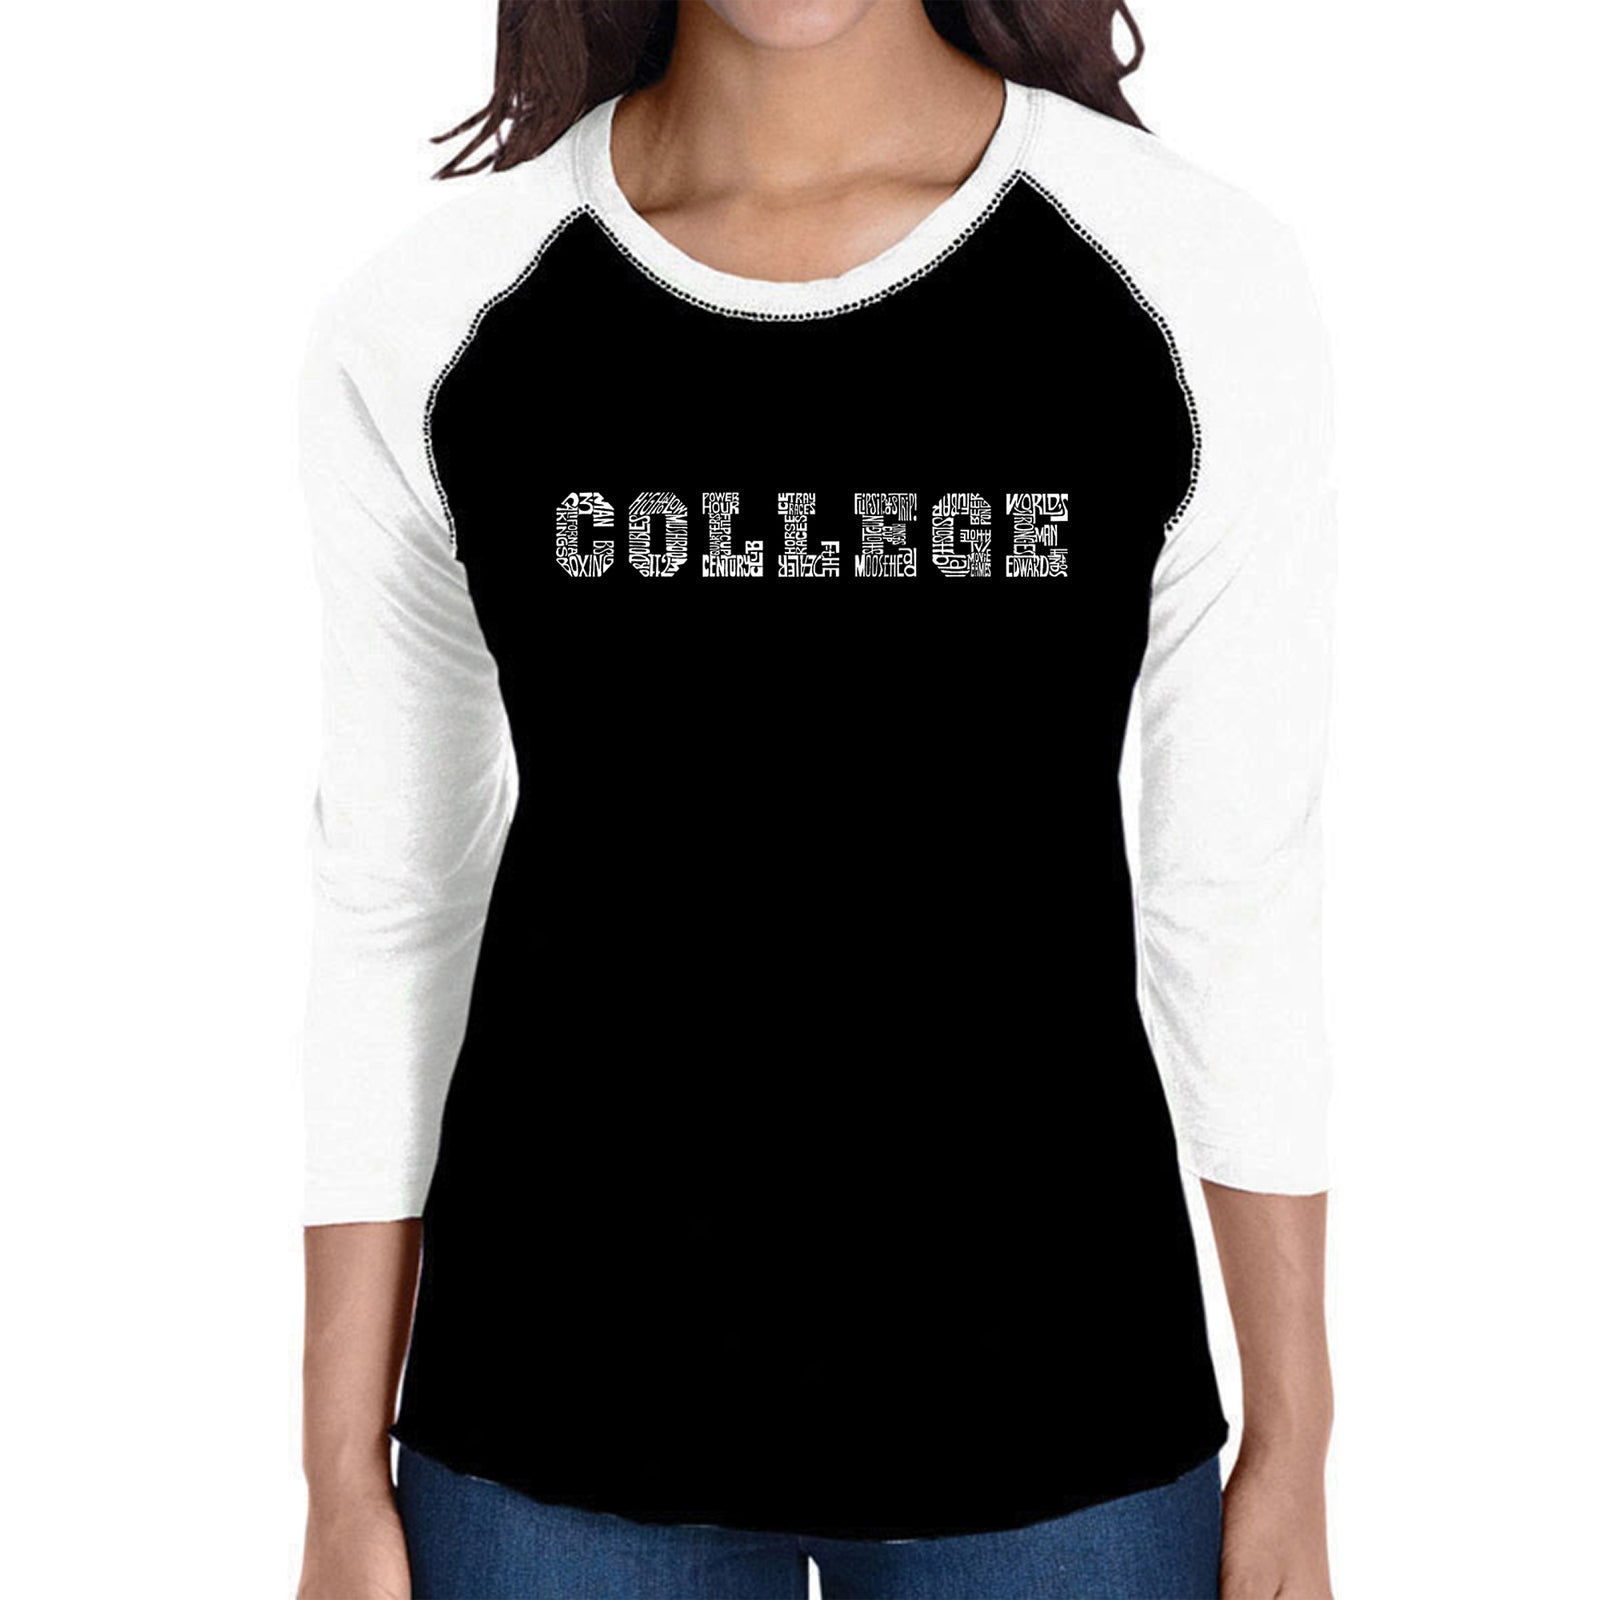 Women's Raglan Baseball Word Art T-shirt - COLLEGE DRINKING GAMES